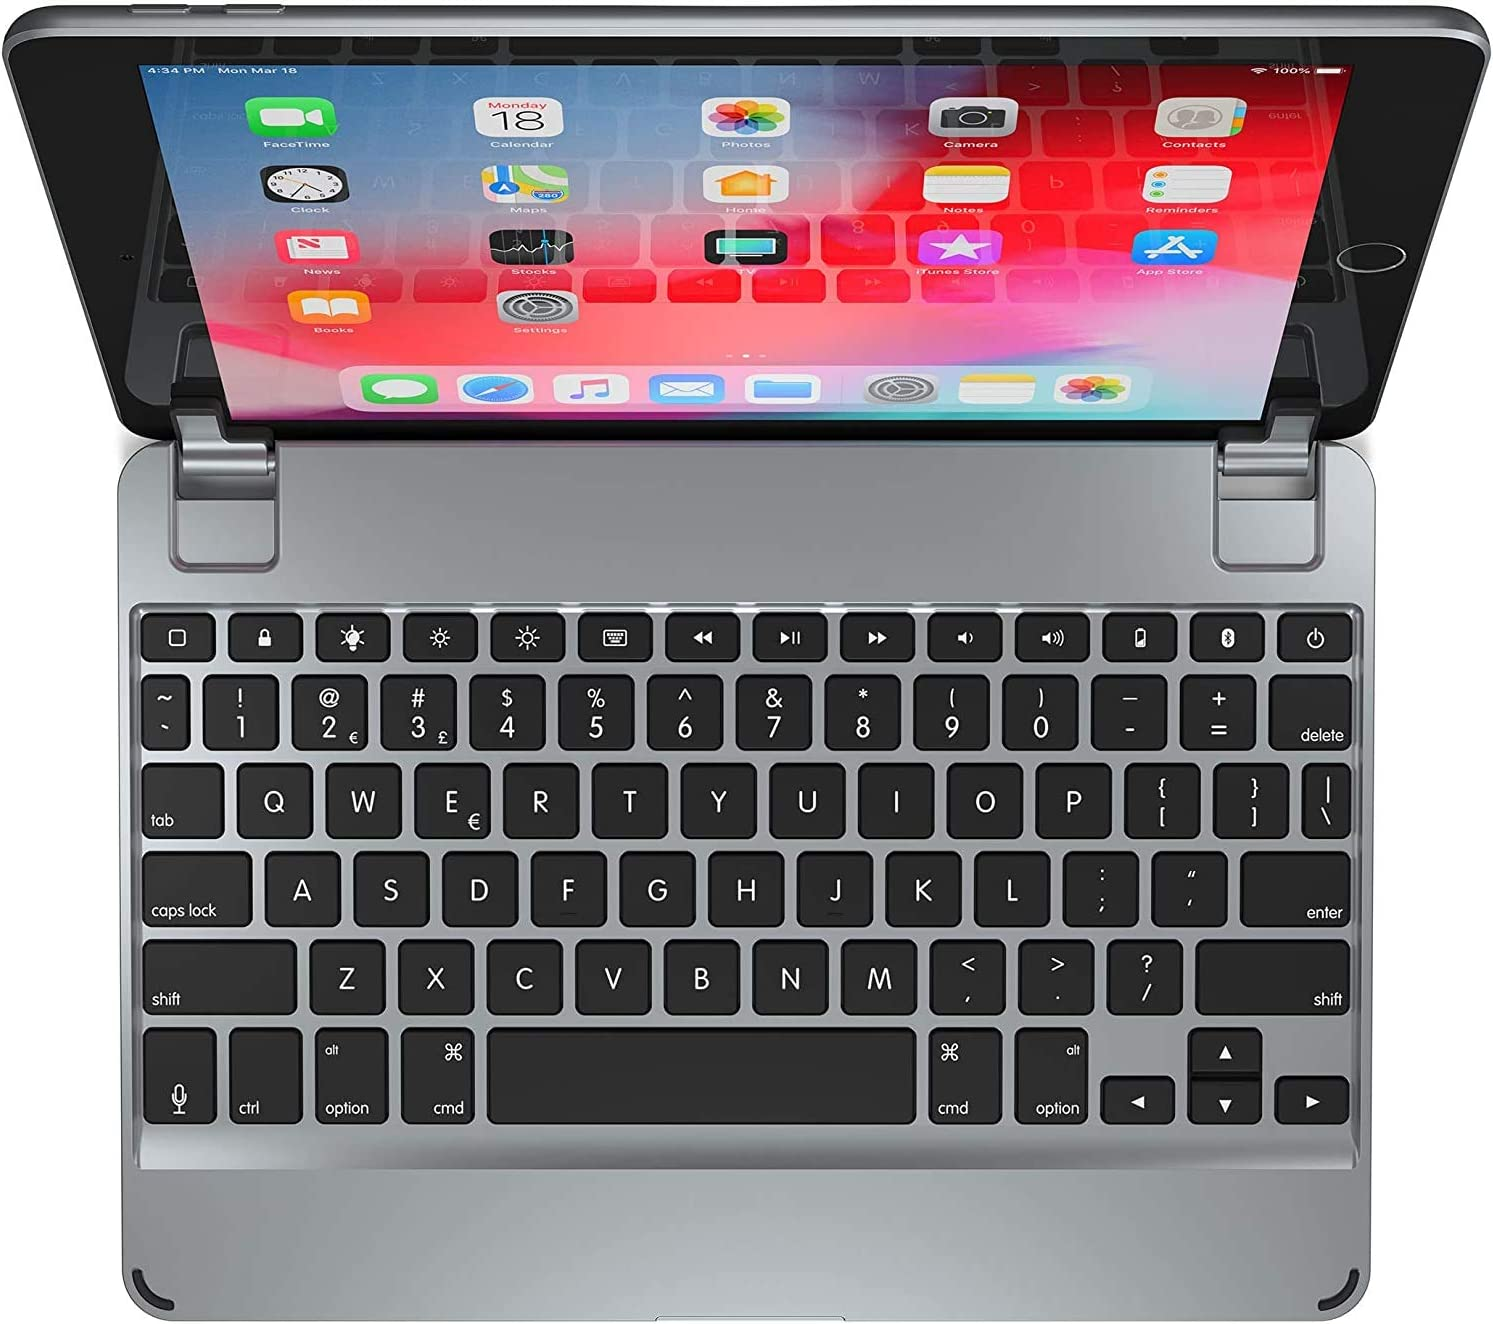 Brydge 9.7 iPad Keyboard | Aluminum Bluetooth Keyboard for 9.7 inch iPad (6th Gen), 5th Gen iPad (2017), iPad Pro 9.7 inch, iPad Air 1 and iPad Air 2 (Space Gray)